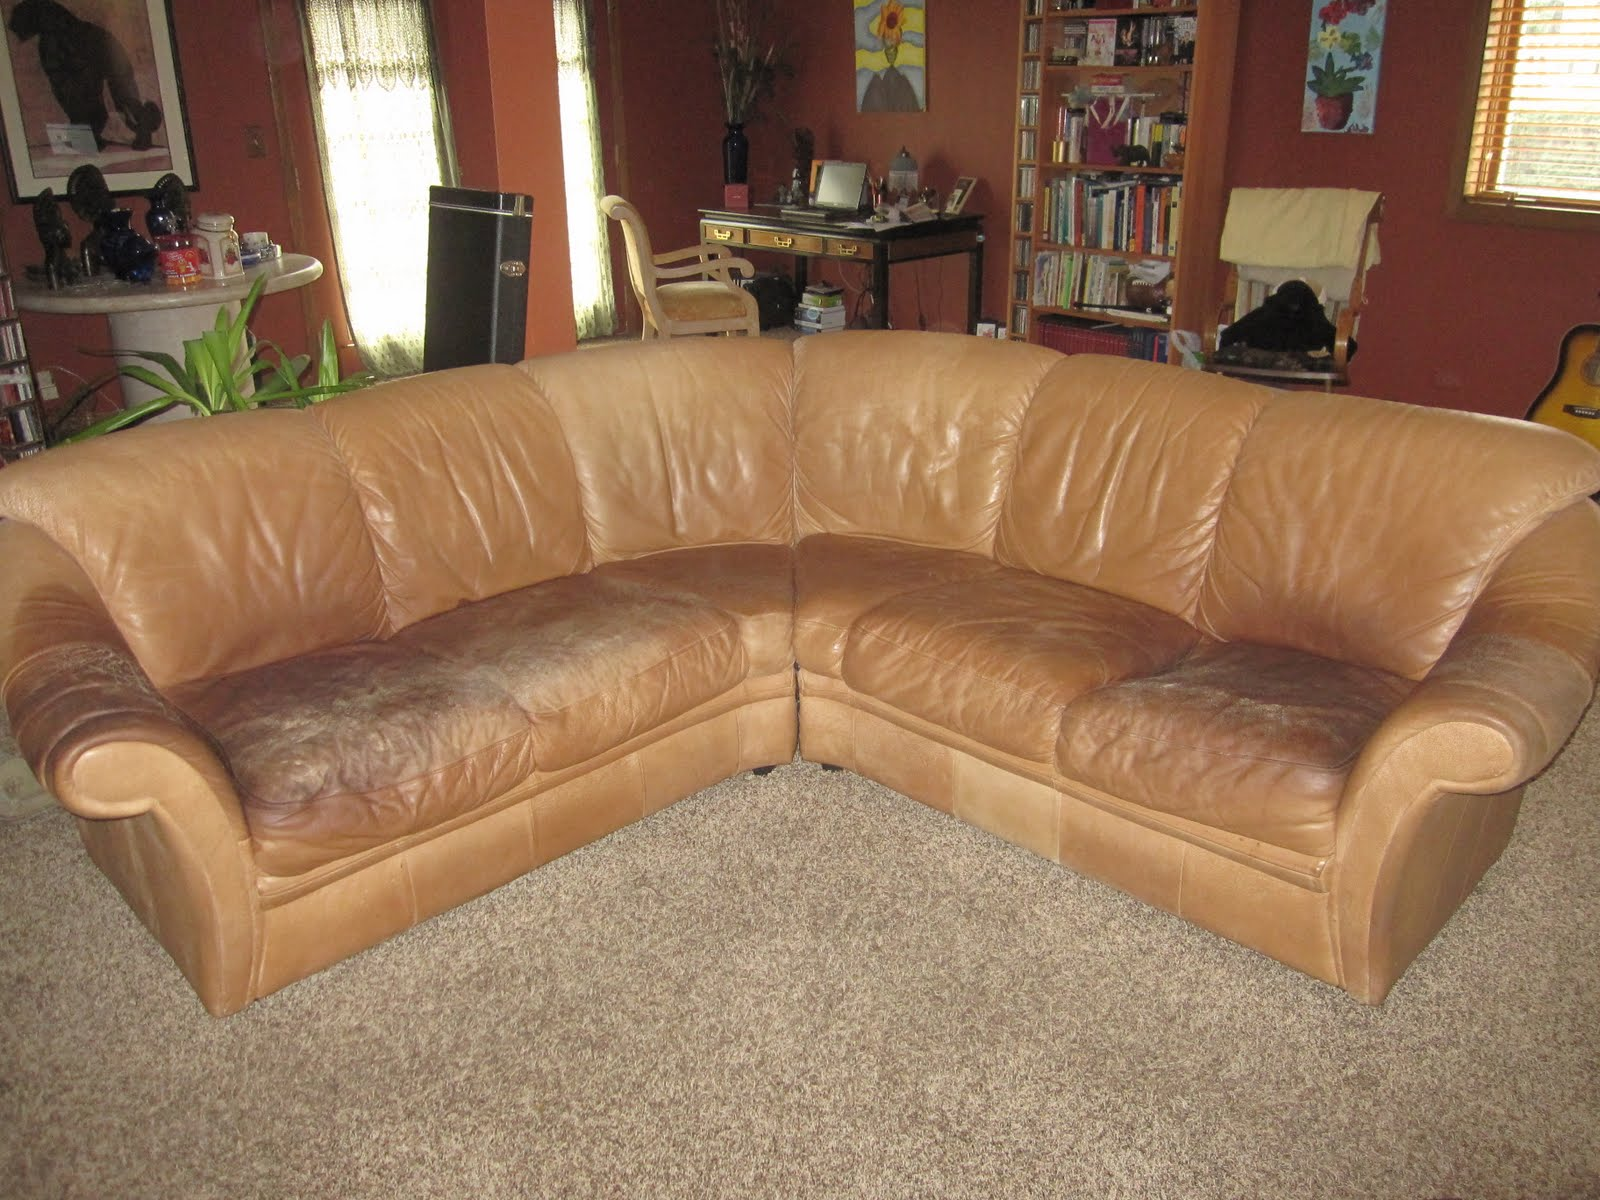 Restoring A Leather Couch Home Improvement